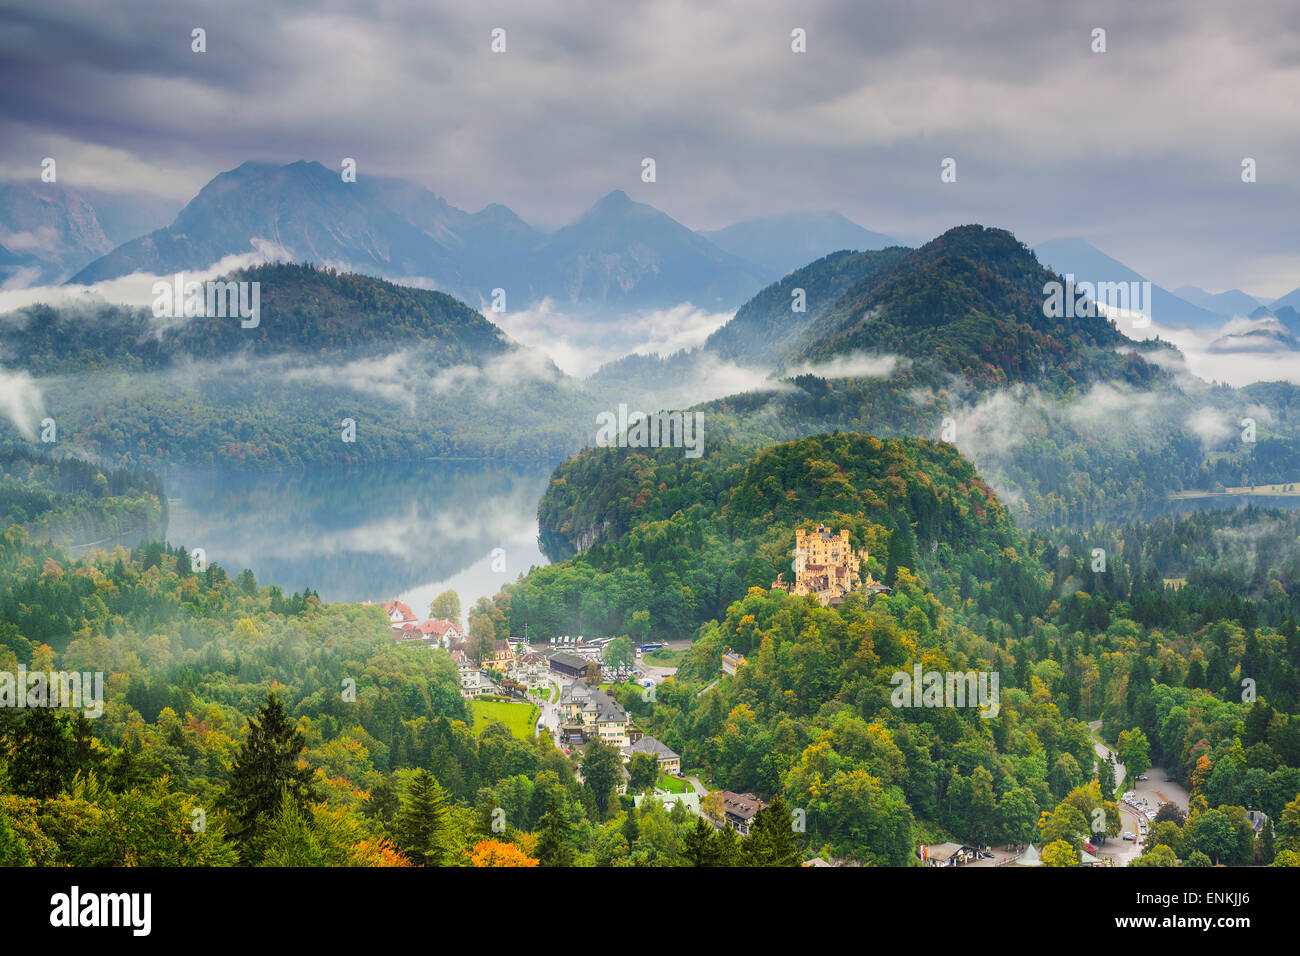 the Bavarian Alps with Hohenschwangau, Germany. - Stock Image